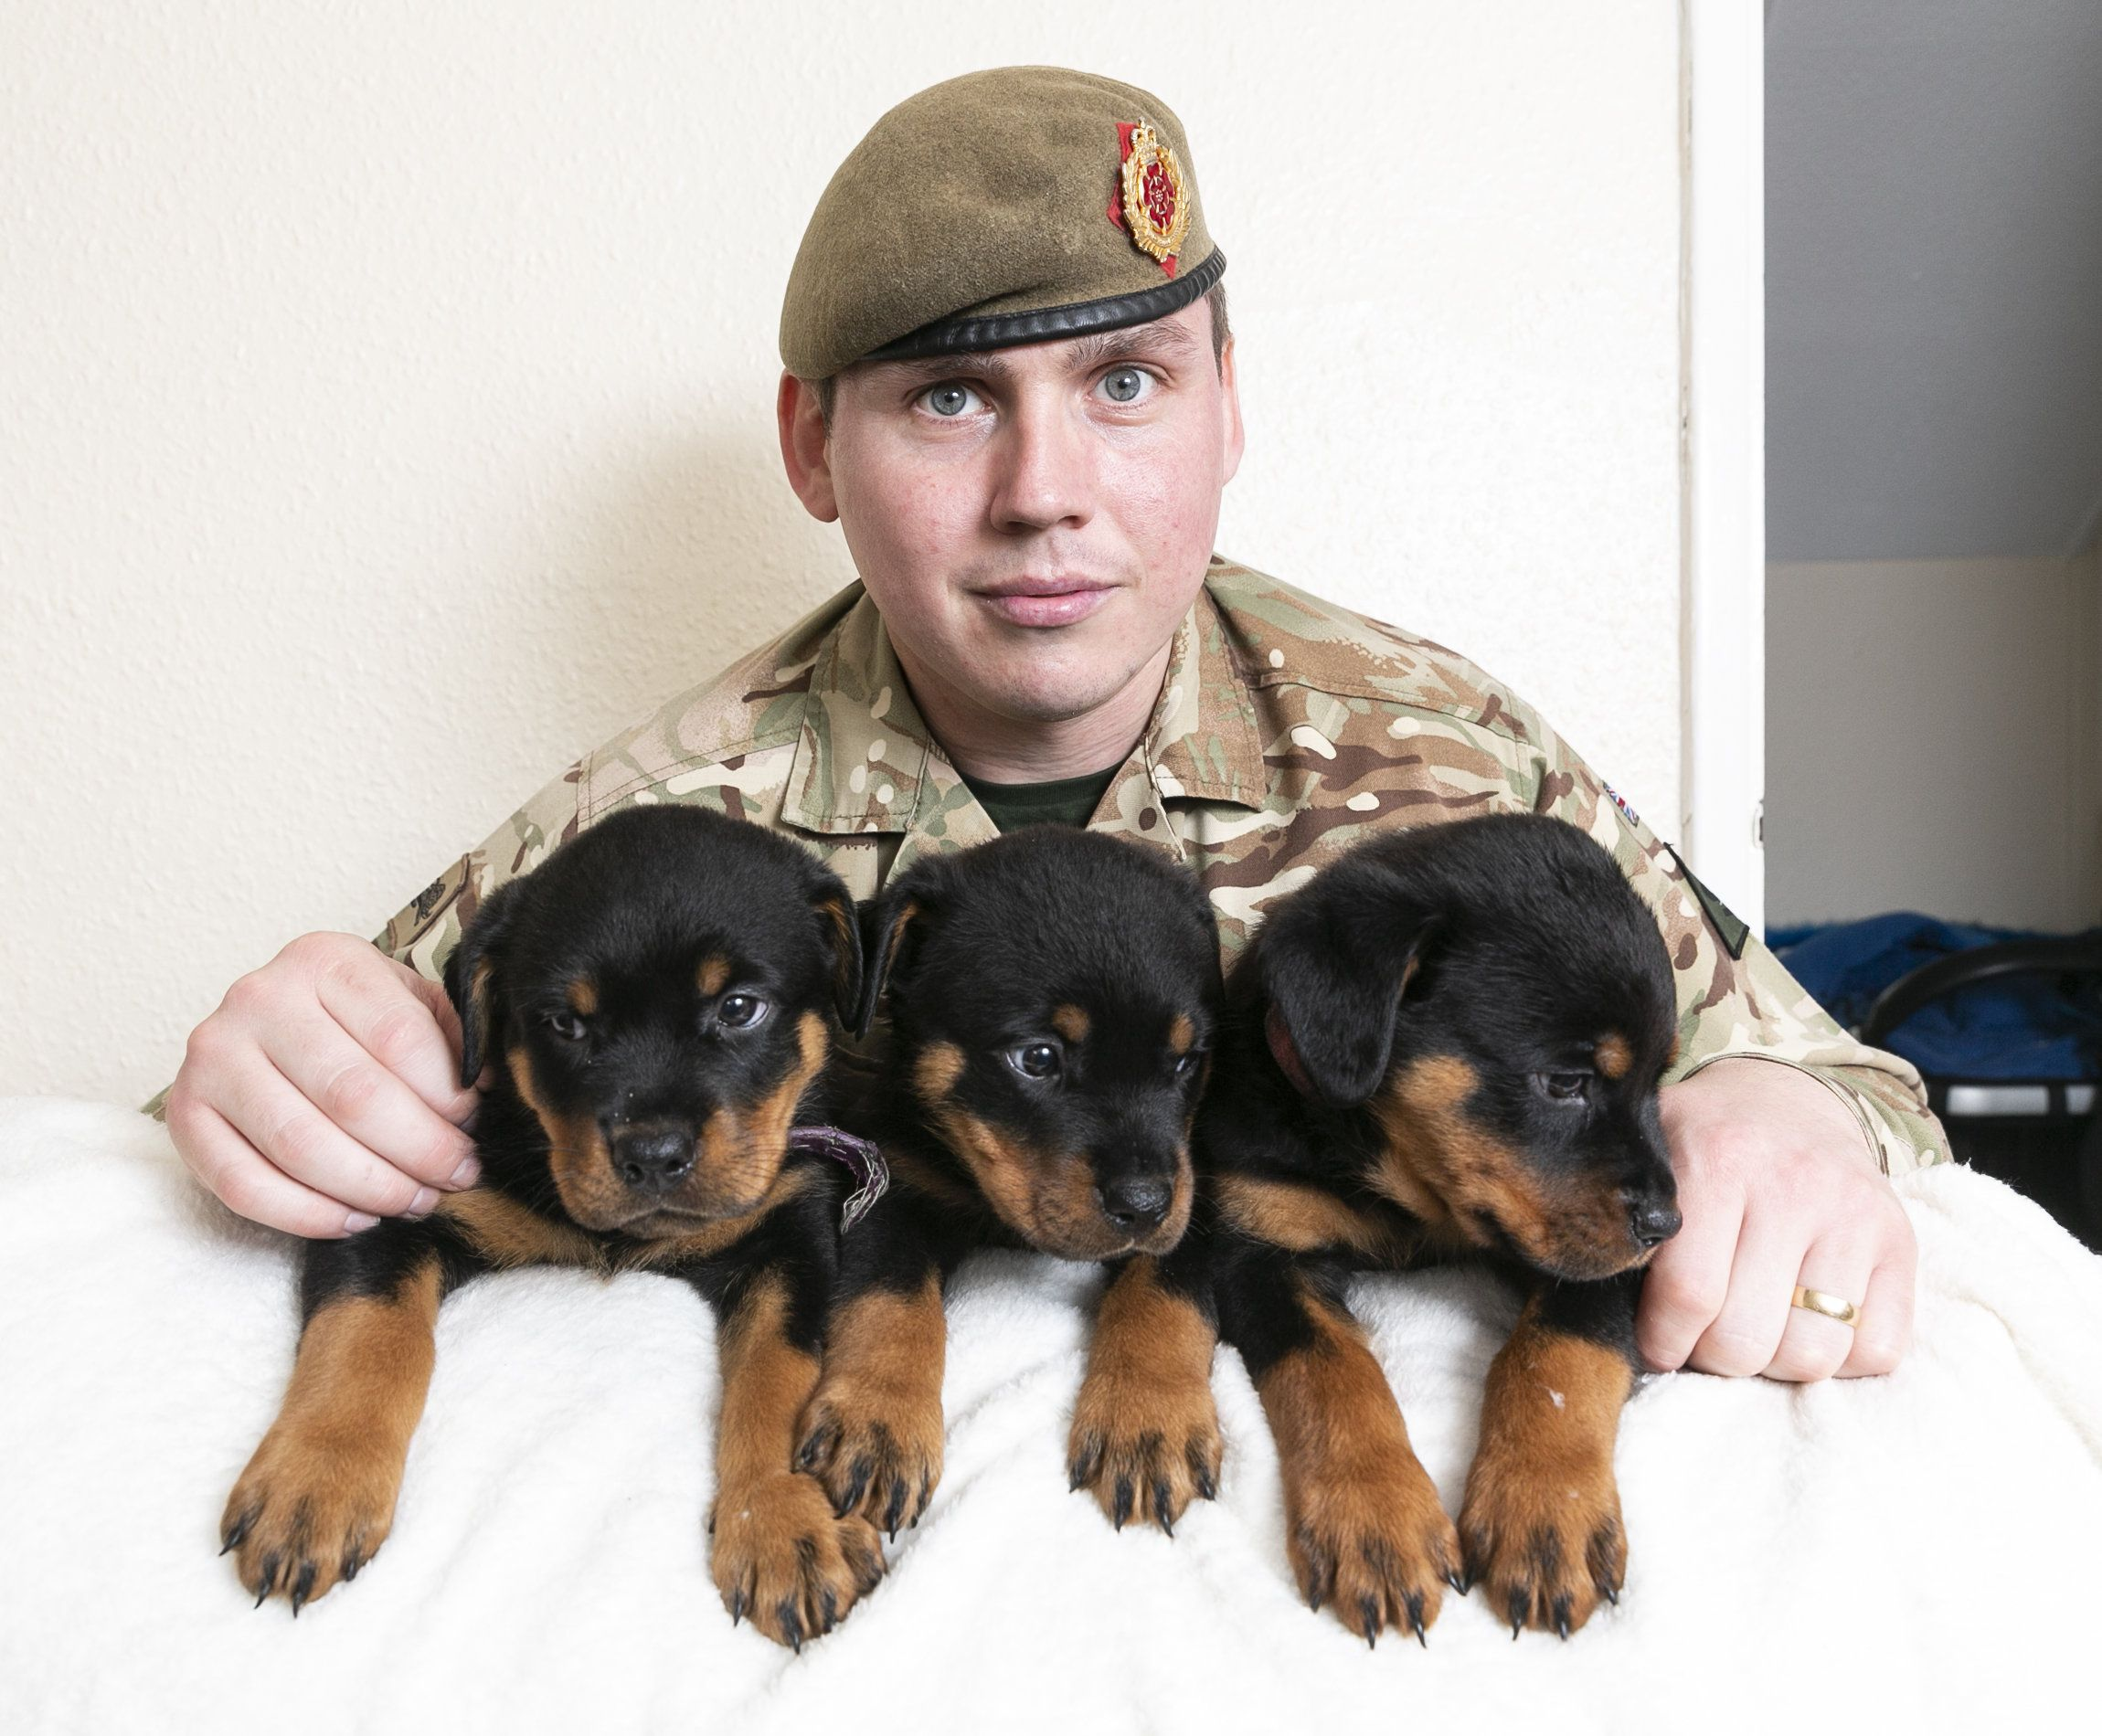 Soldier S Pet Rottweiler Gives Birth To 16 Puppies Ties Record